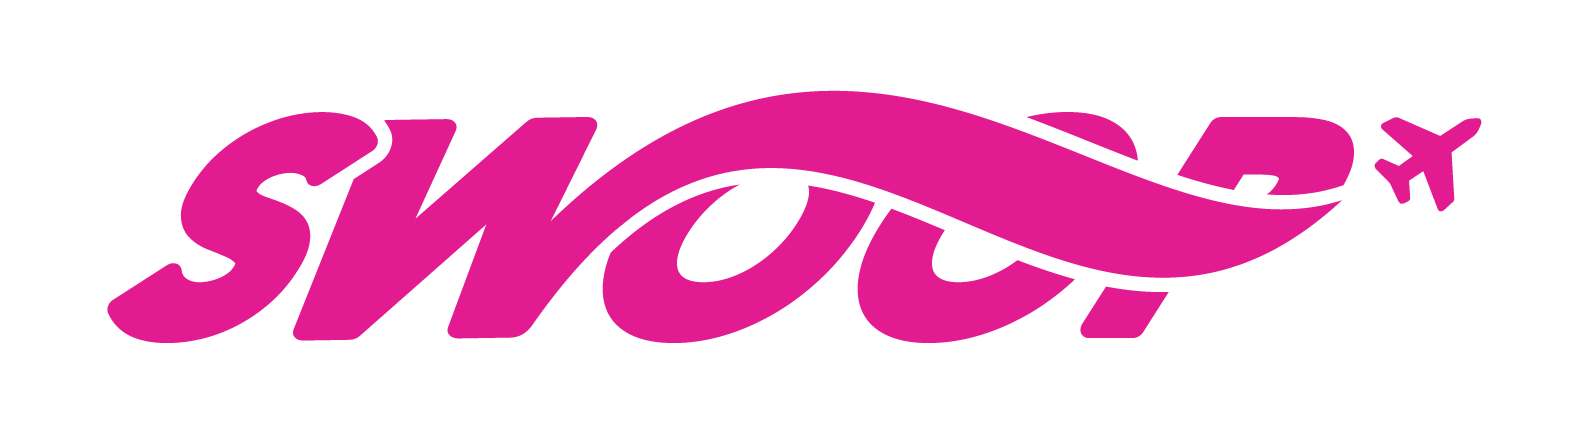 swoop_primary_logo_pms225_-01.png